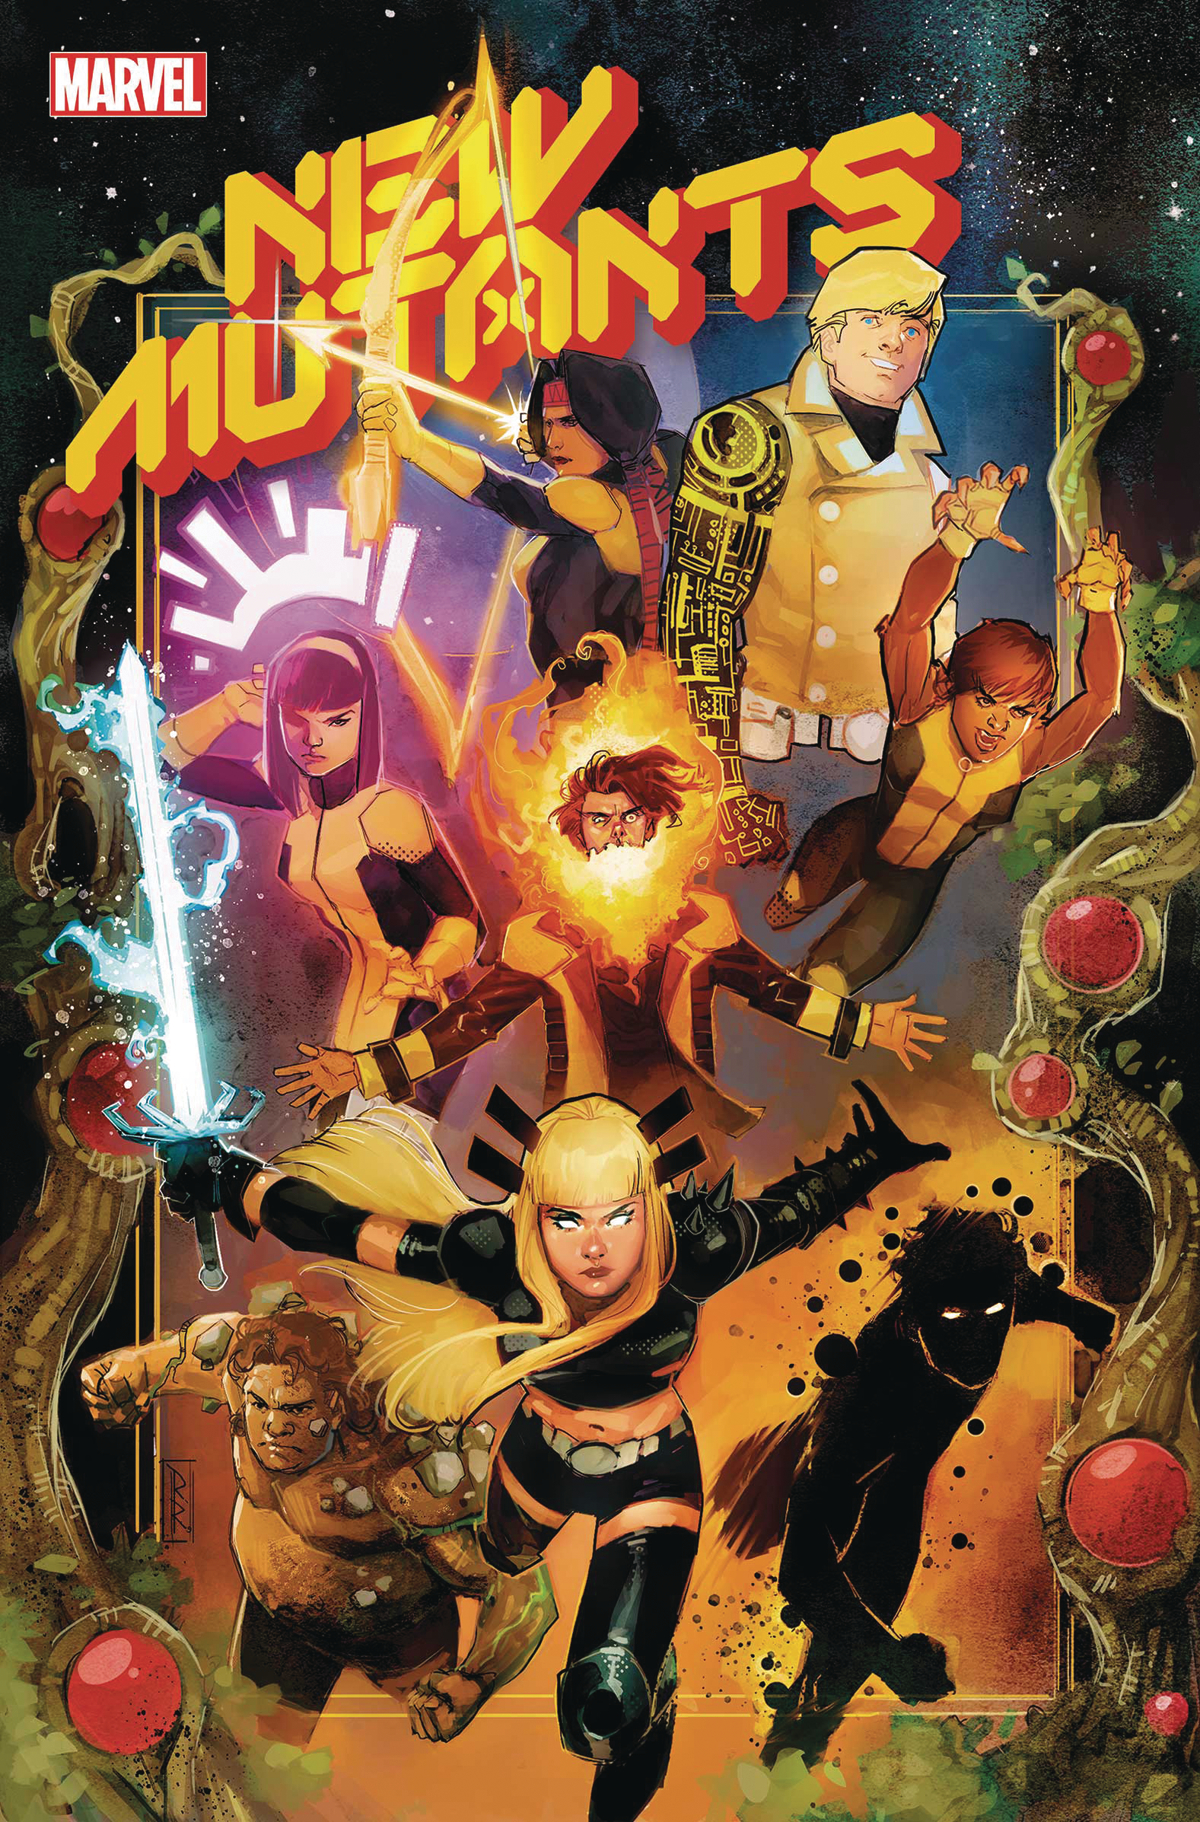 The Marvel Rundown: The NEW MUTANTS explore a new frontier for mutantdom